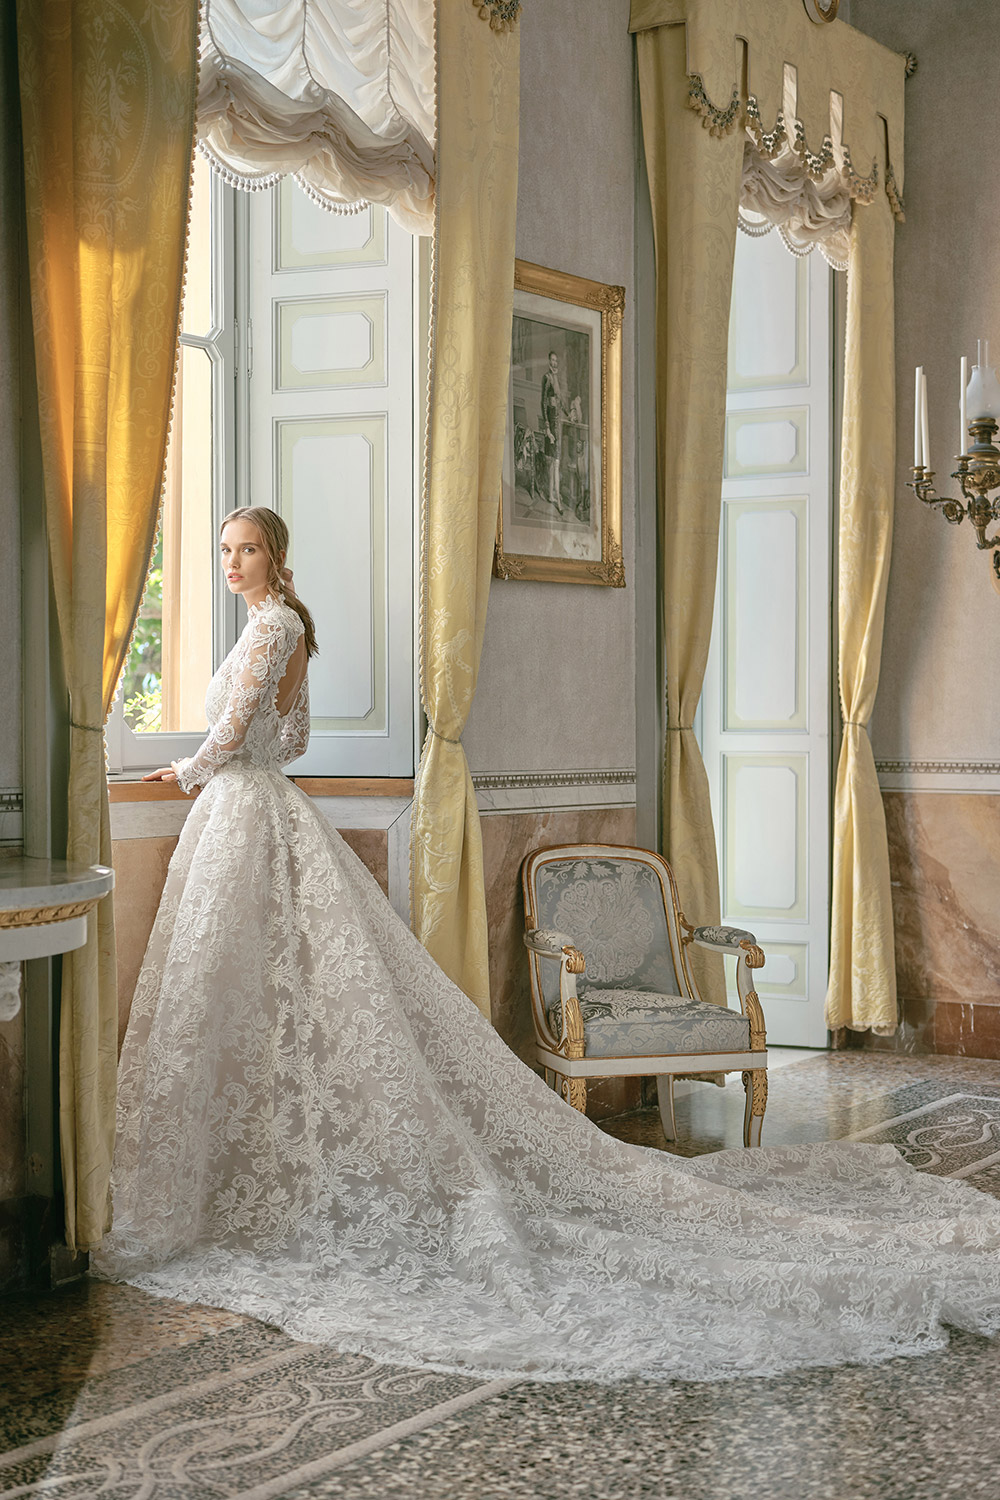 Emilia - Monique Lhuillier Fall 2020 Bridal Collection. www.theweddingnotebook.com